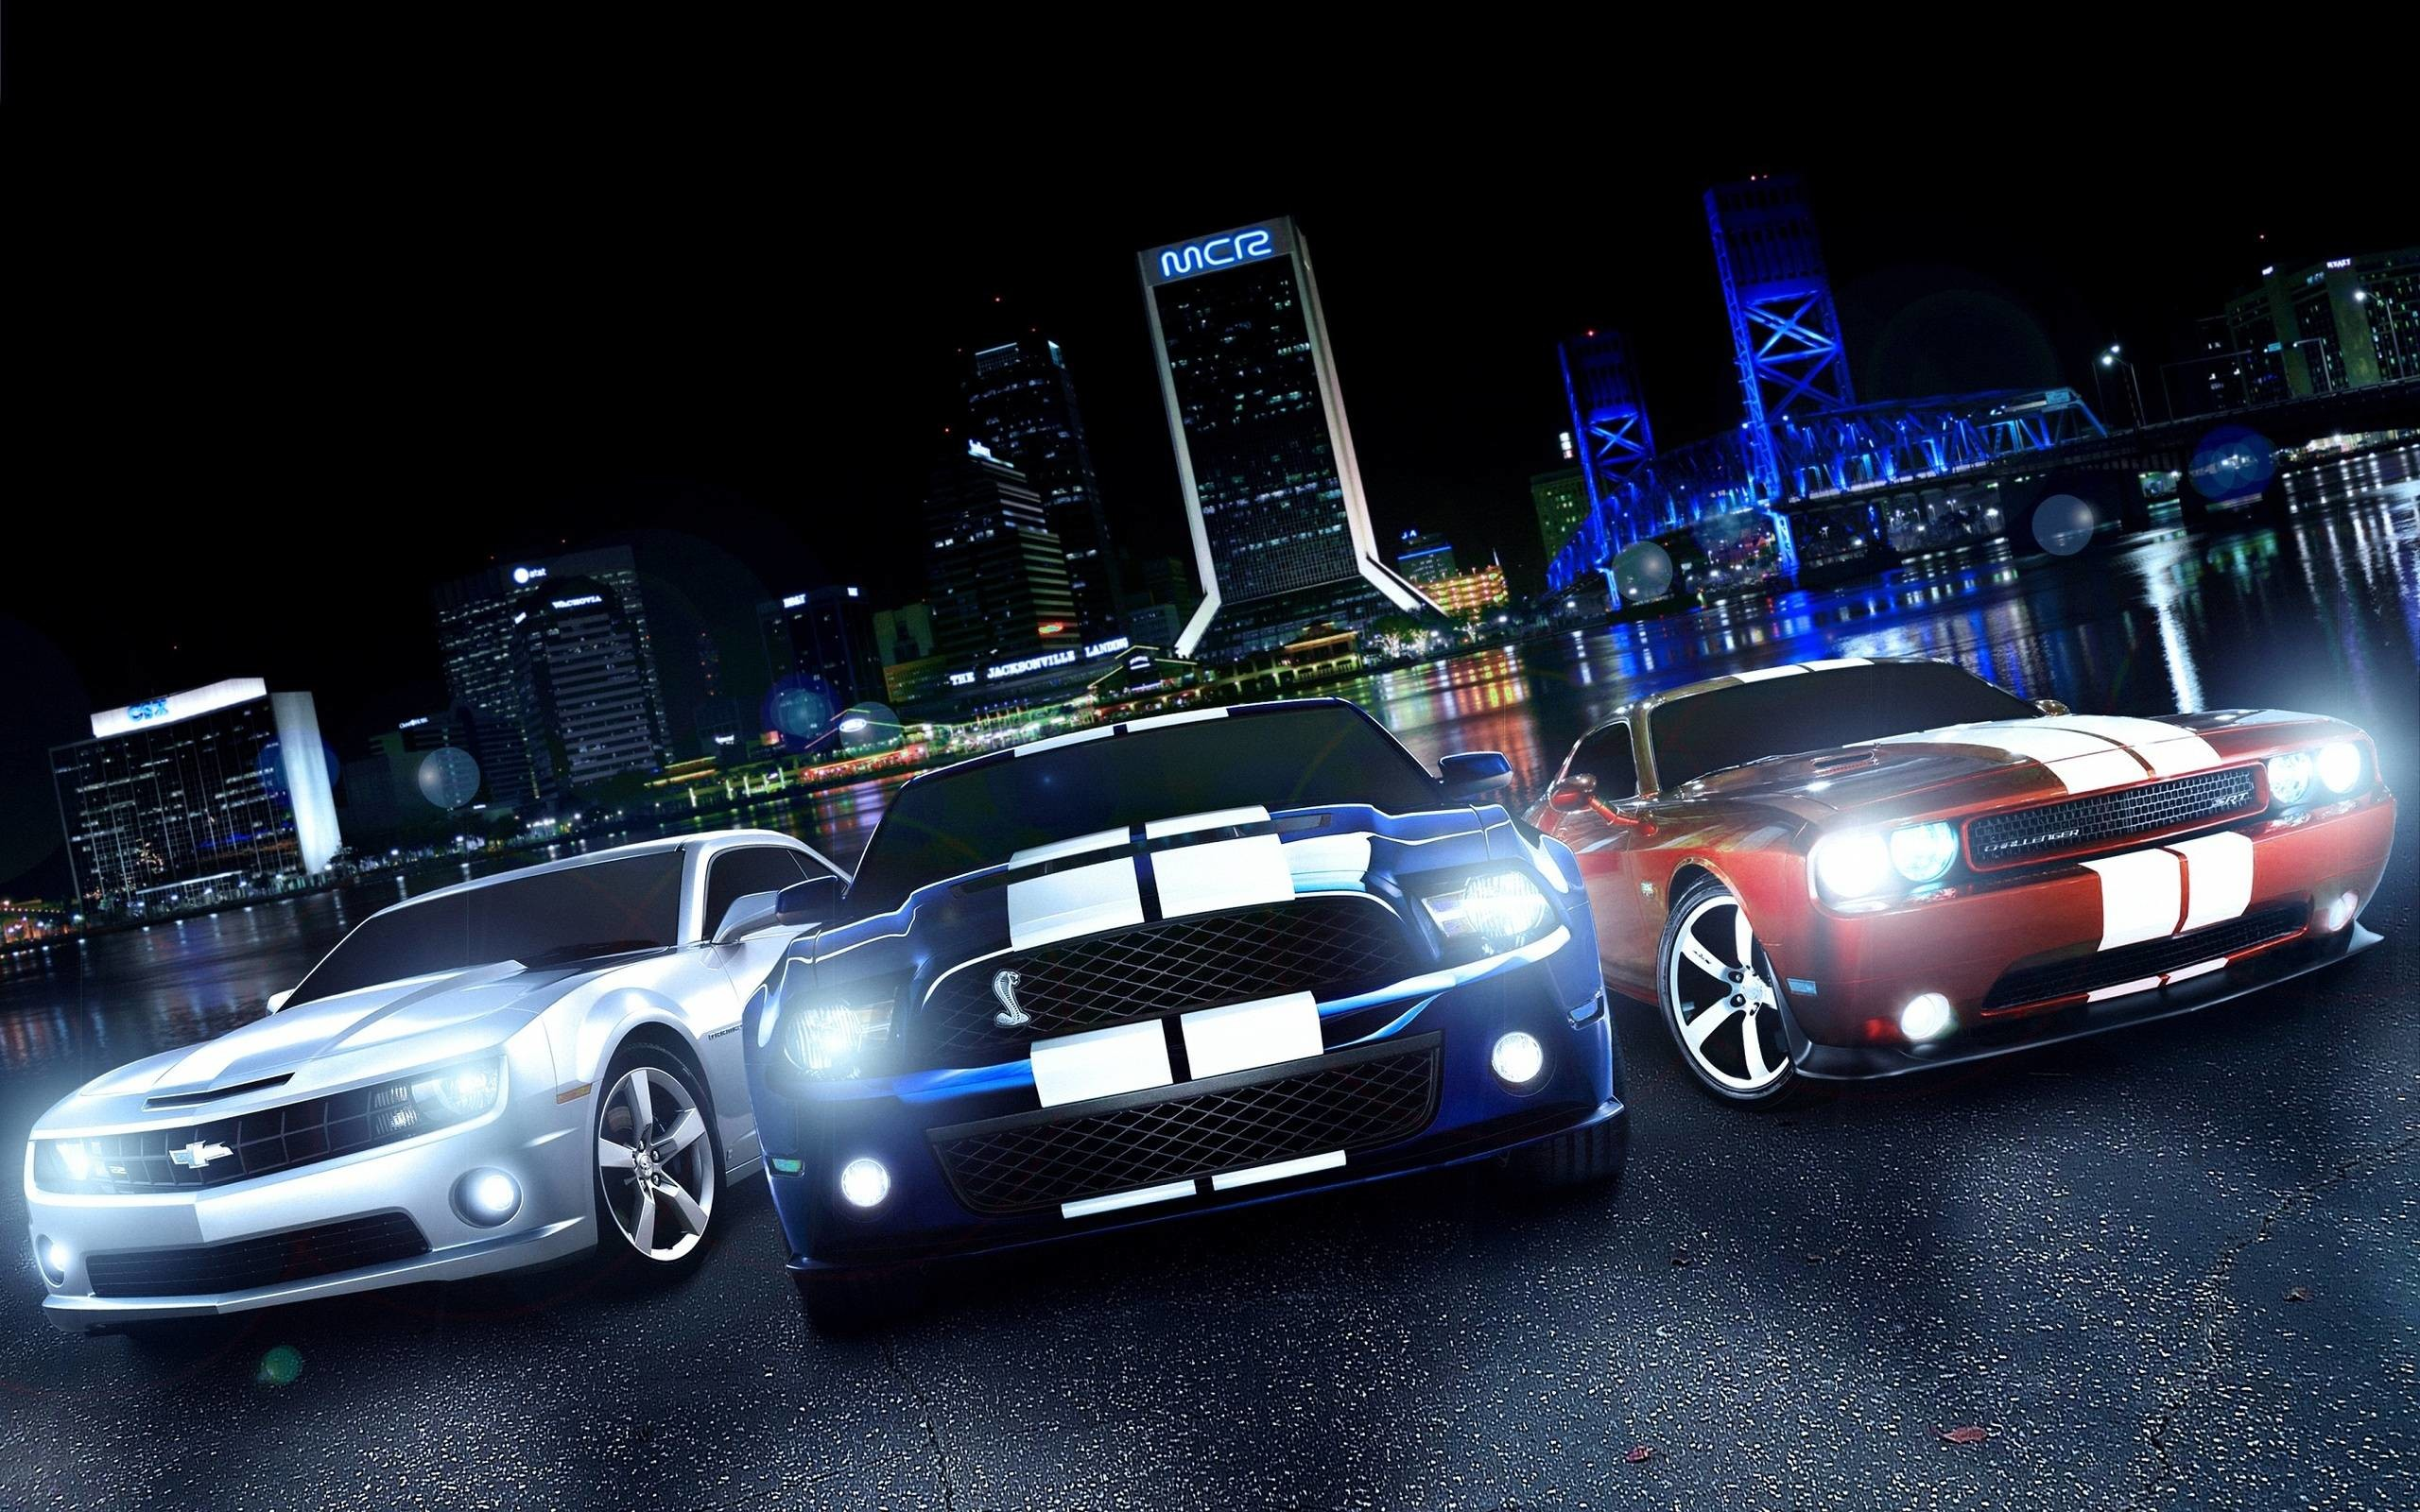 … Mustang Wallpaper Images HD Wallpapers, Page 0 | Wallfoy.